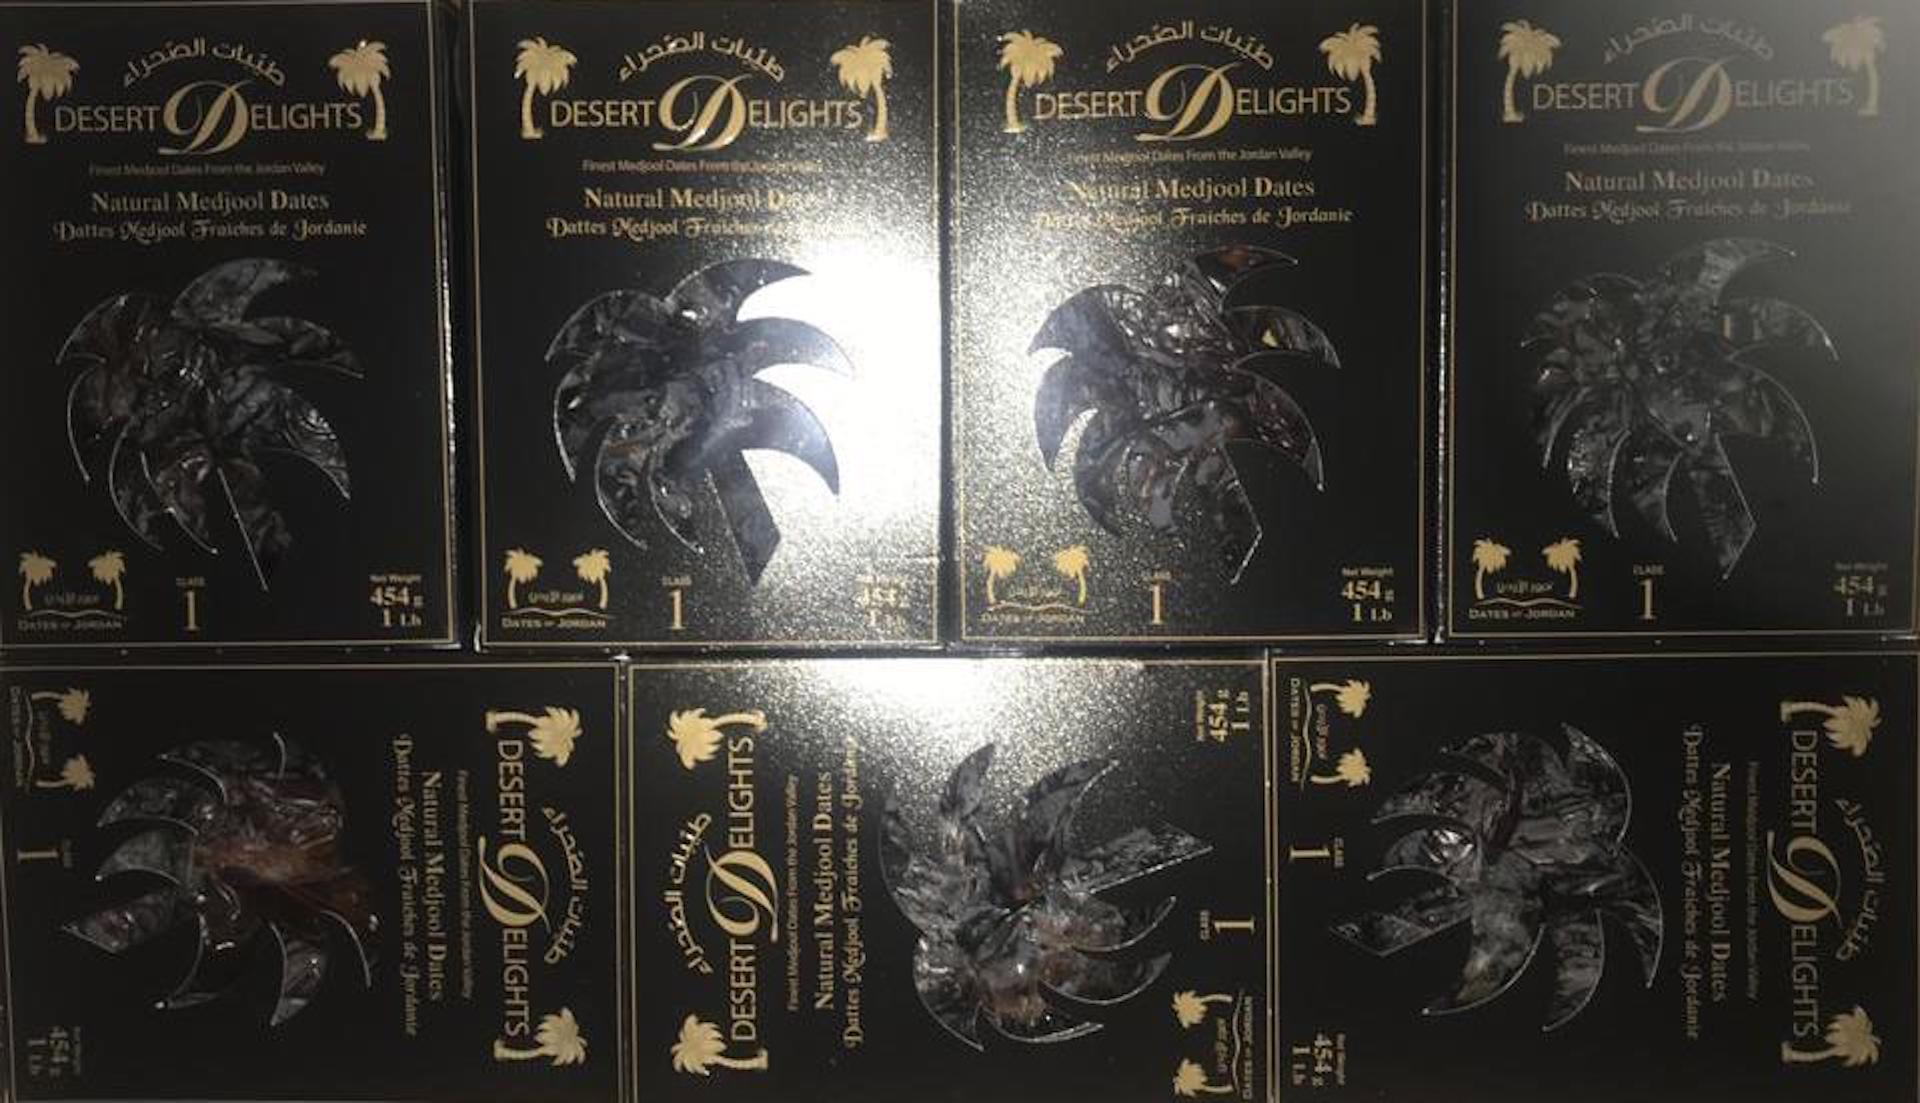 Desert Delights Dates in stock (0.454g) per box